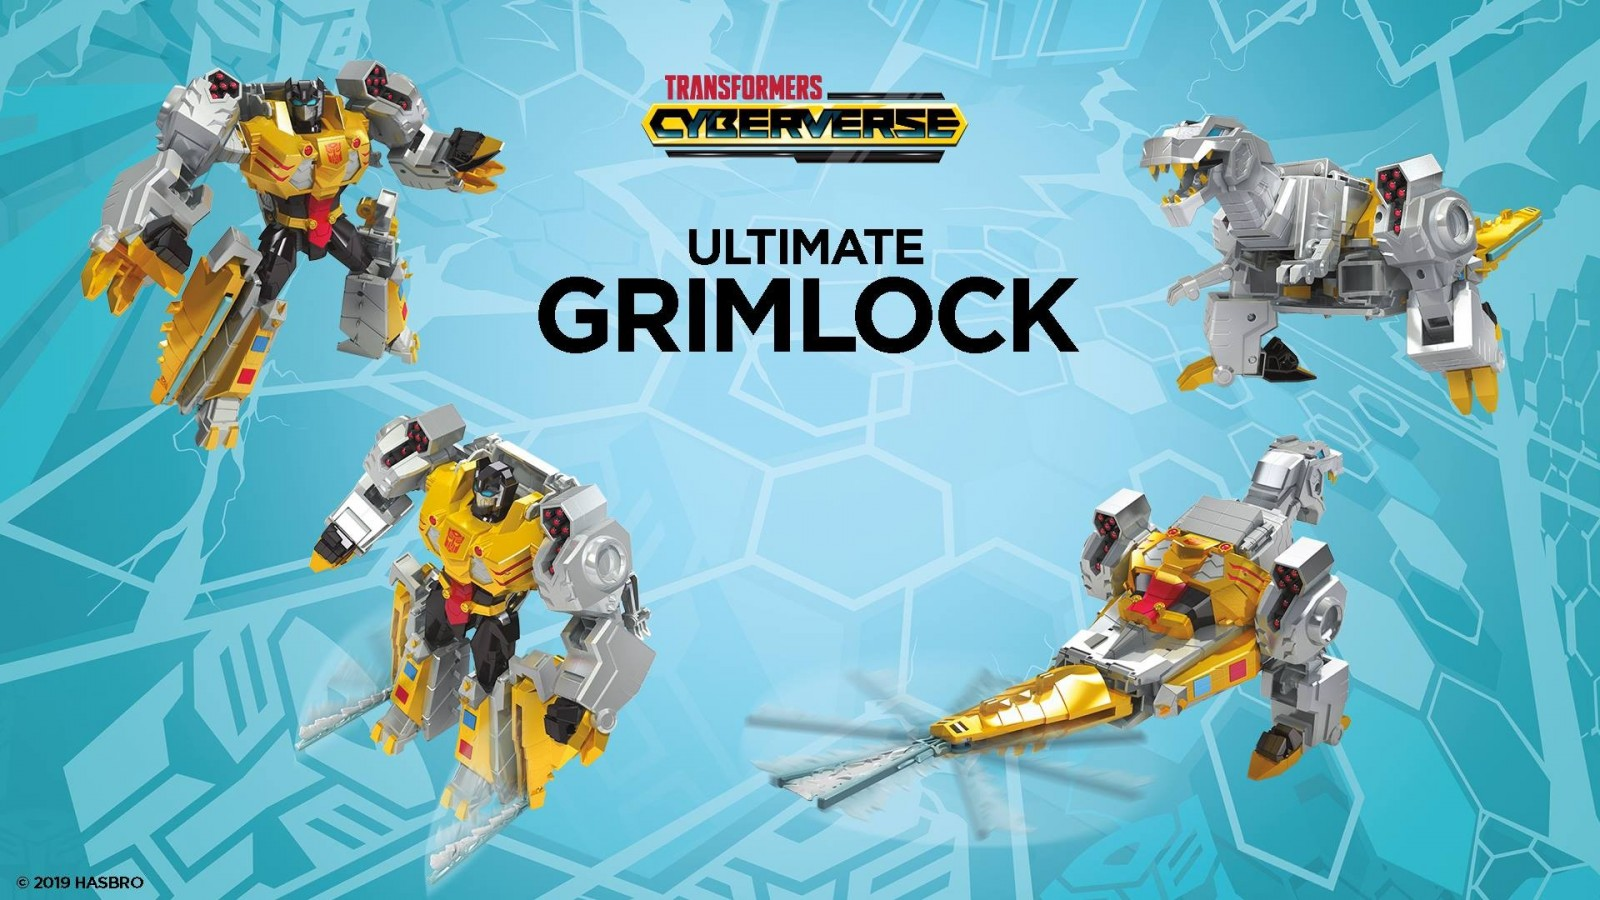 Transformers News: Stock images of new Cyberverse toys, revealing Scraplet, Gnaw, Alpha Trion, Deadlock, and more!